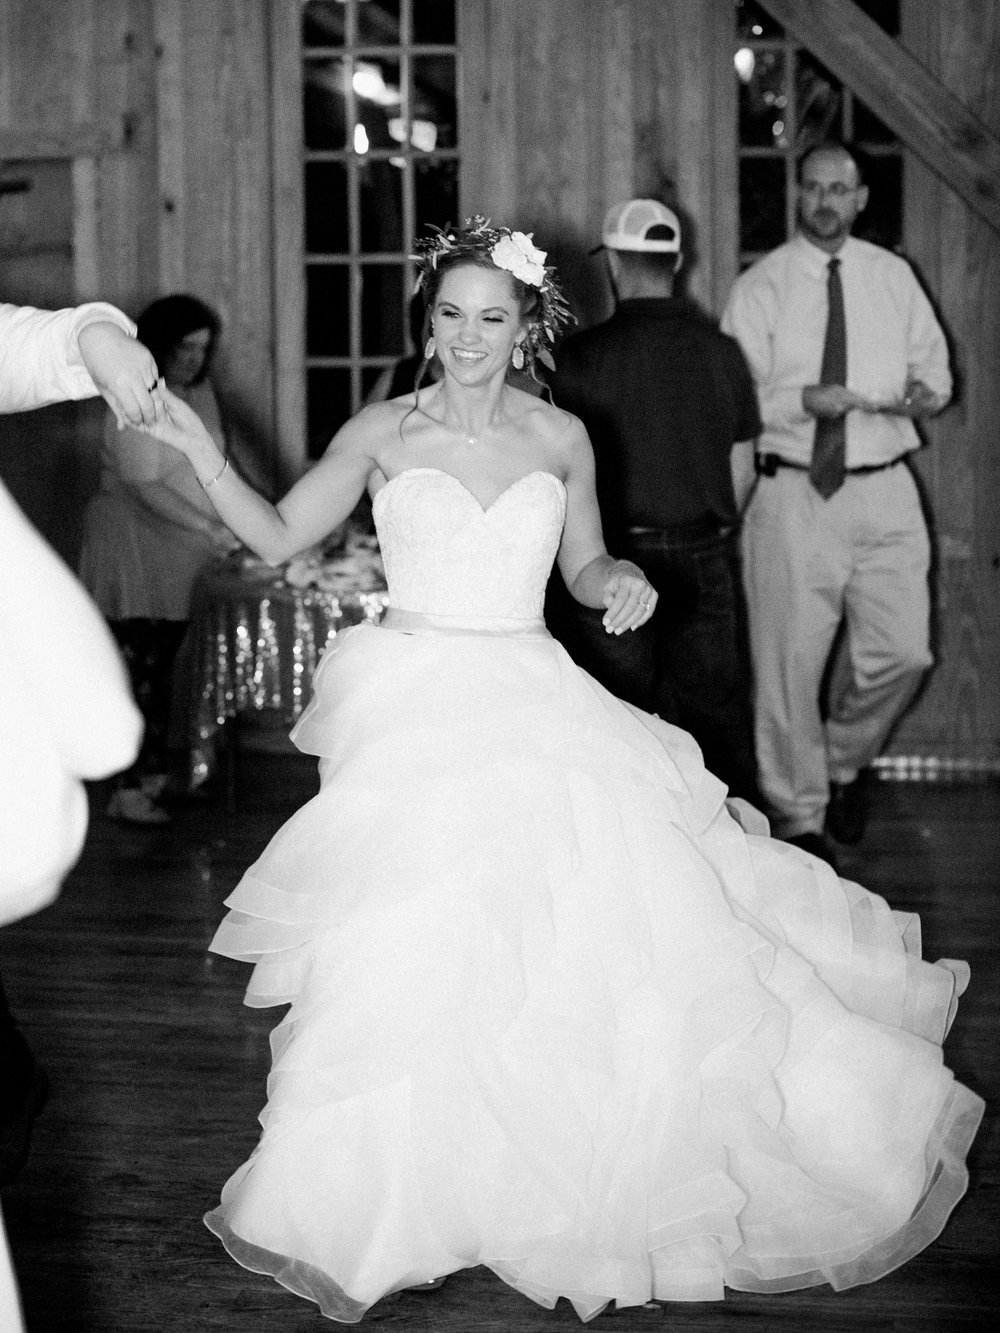 Hill Country Spring Wedding at Red Bud Hall | Austin Wedding Photographer | Film Wedding Photographer | Britni Dean Photography | Rainy Day Wedding Inspiration | fun wedding reception